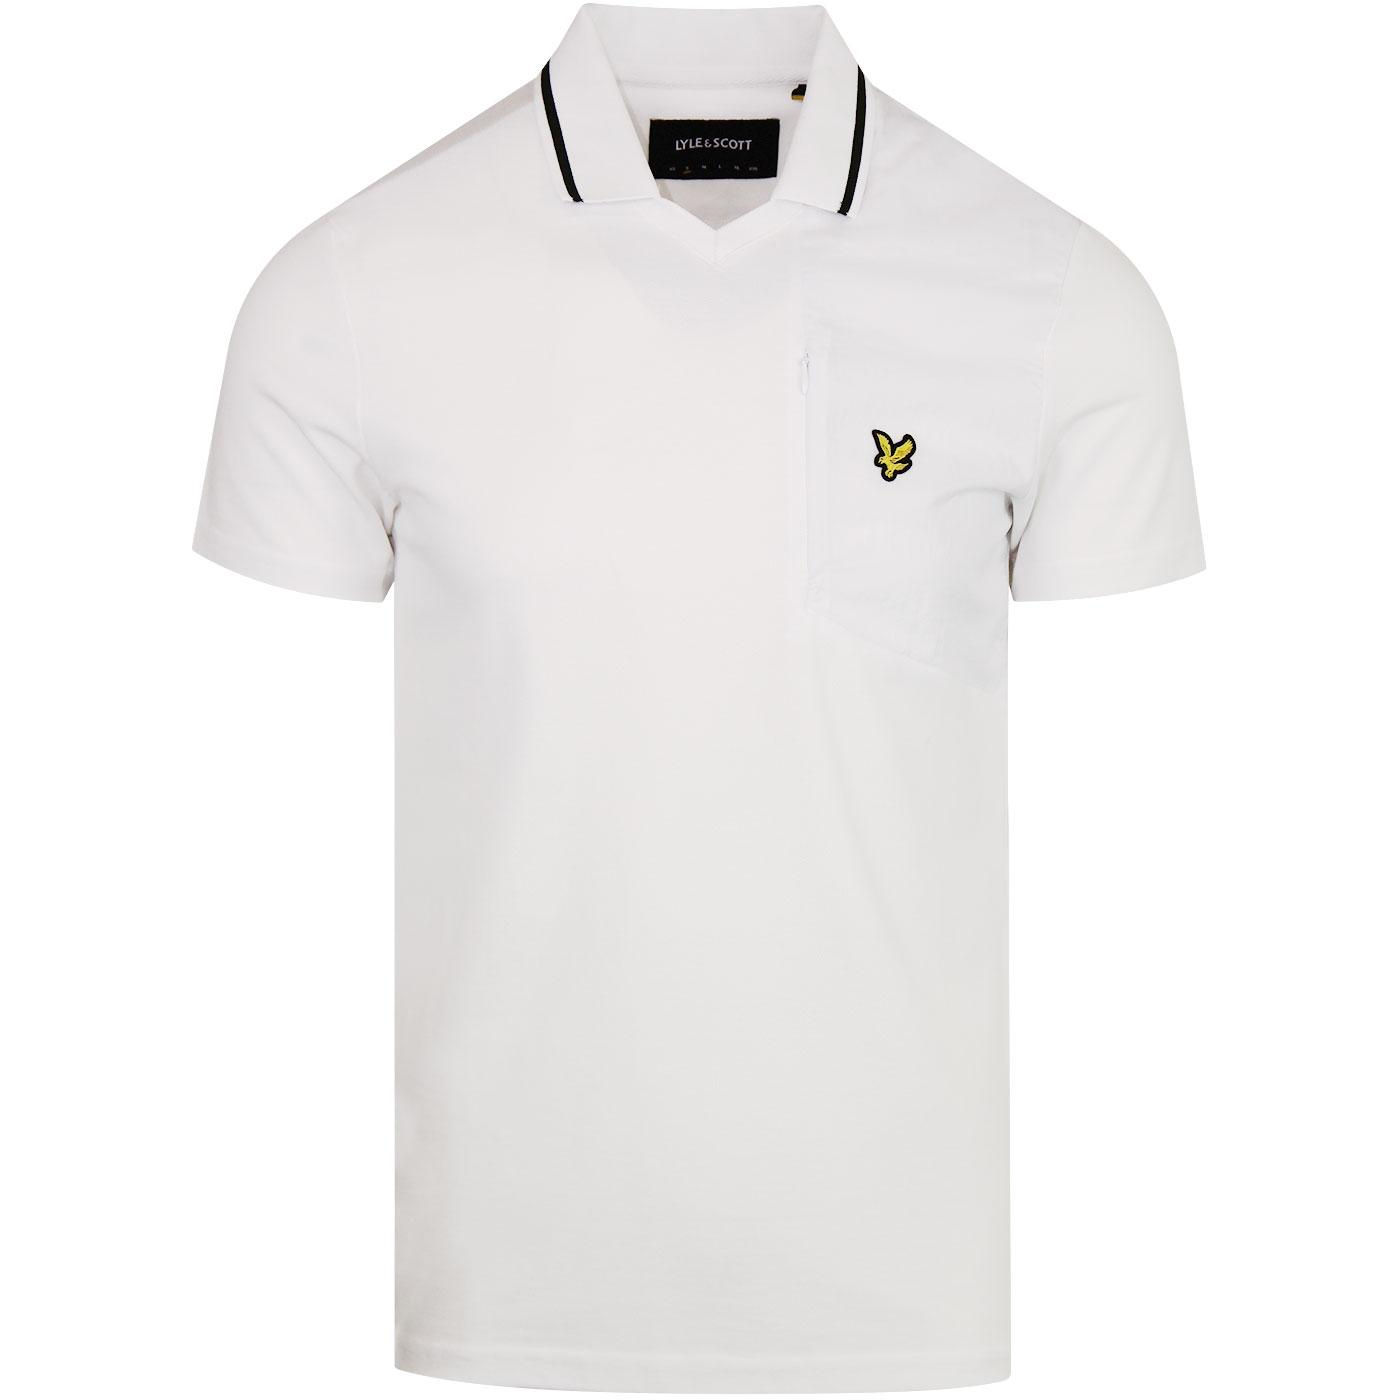 LYLE & SCOTT Retro 70s Football Polo Shirt WHITE